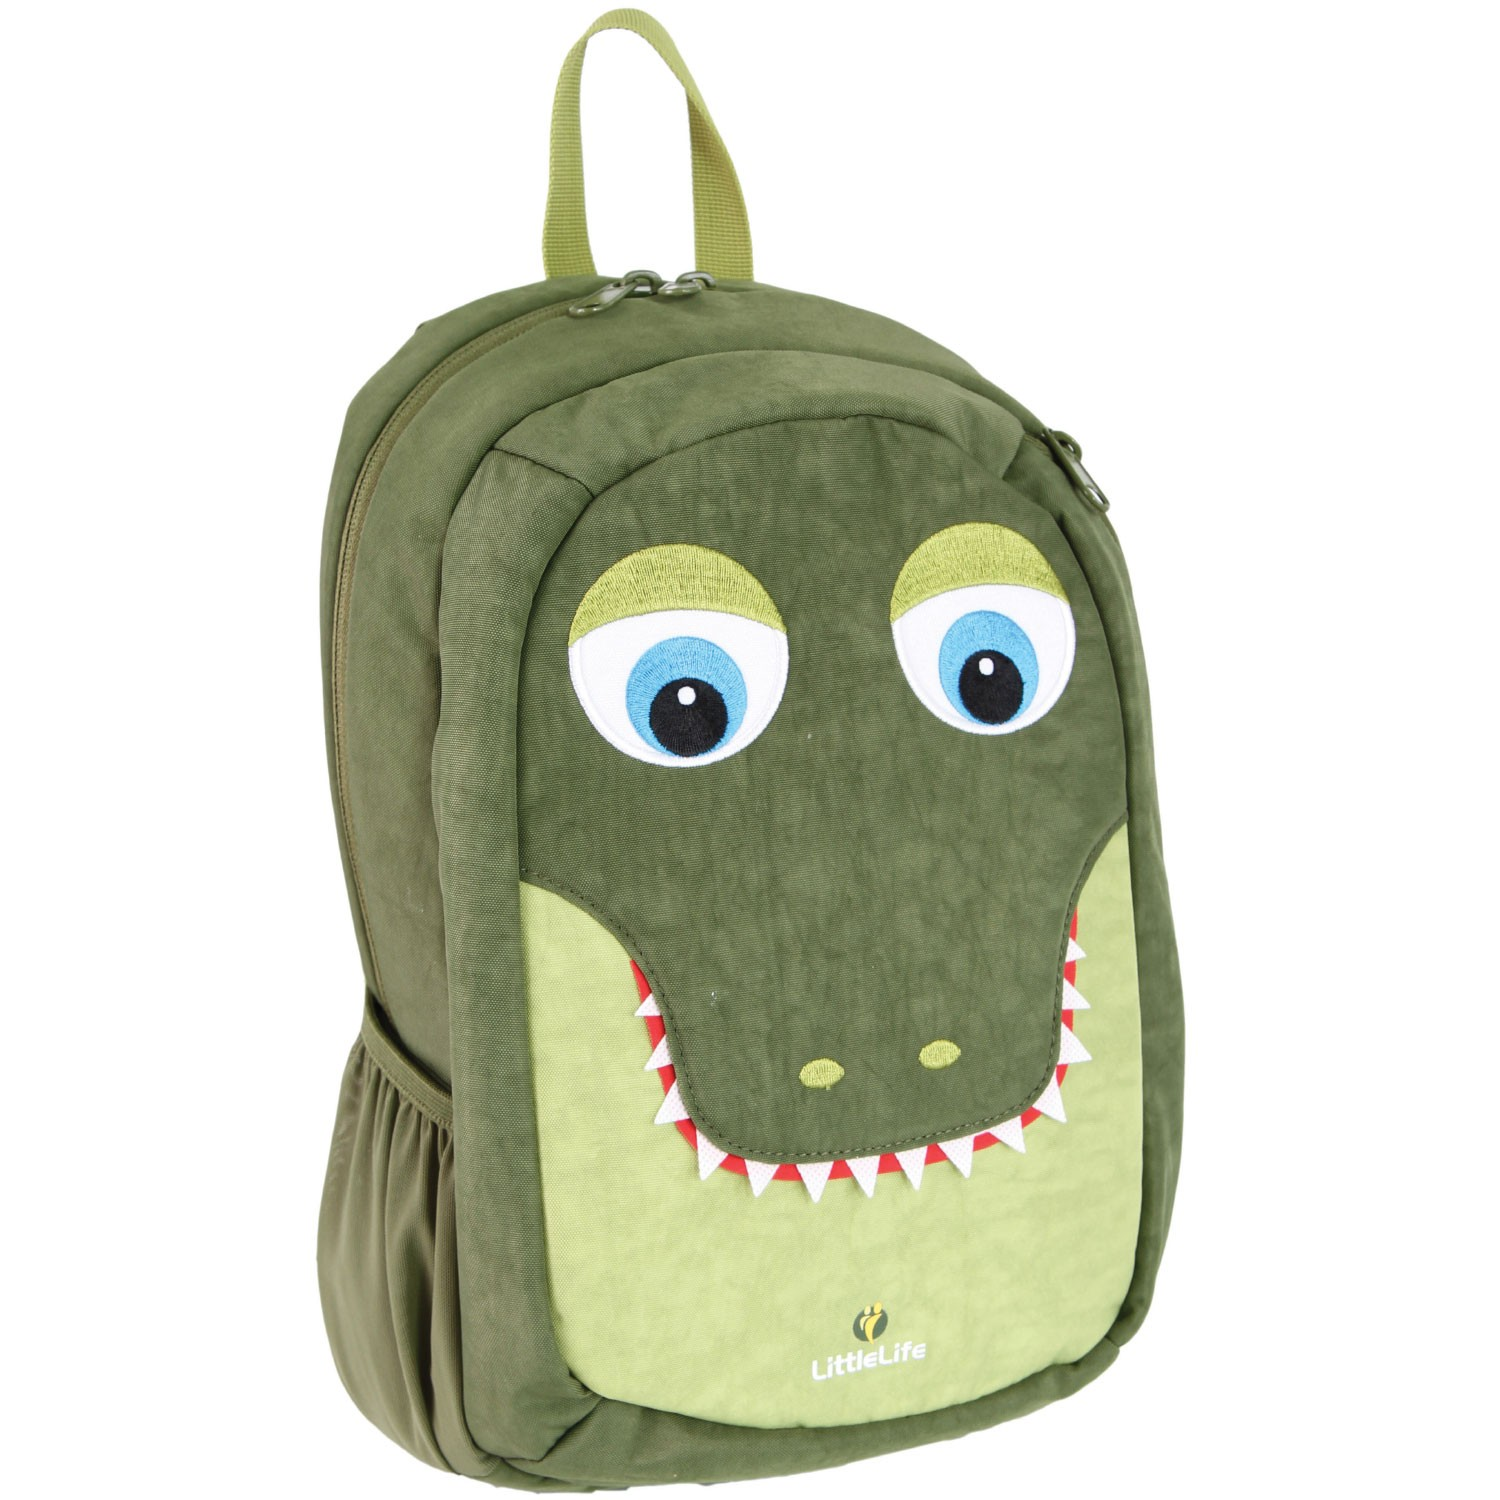 LITTLELIFE - Toddler's Animal Rucksack - Crocodile